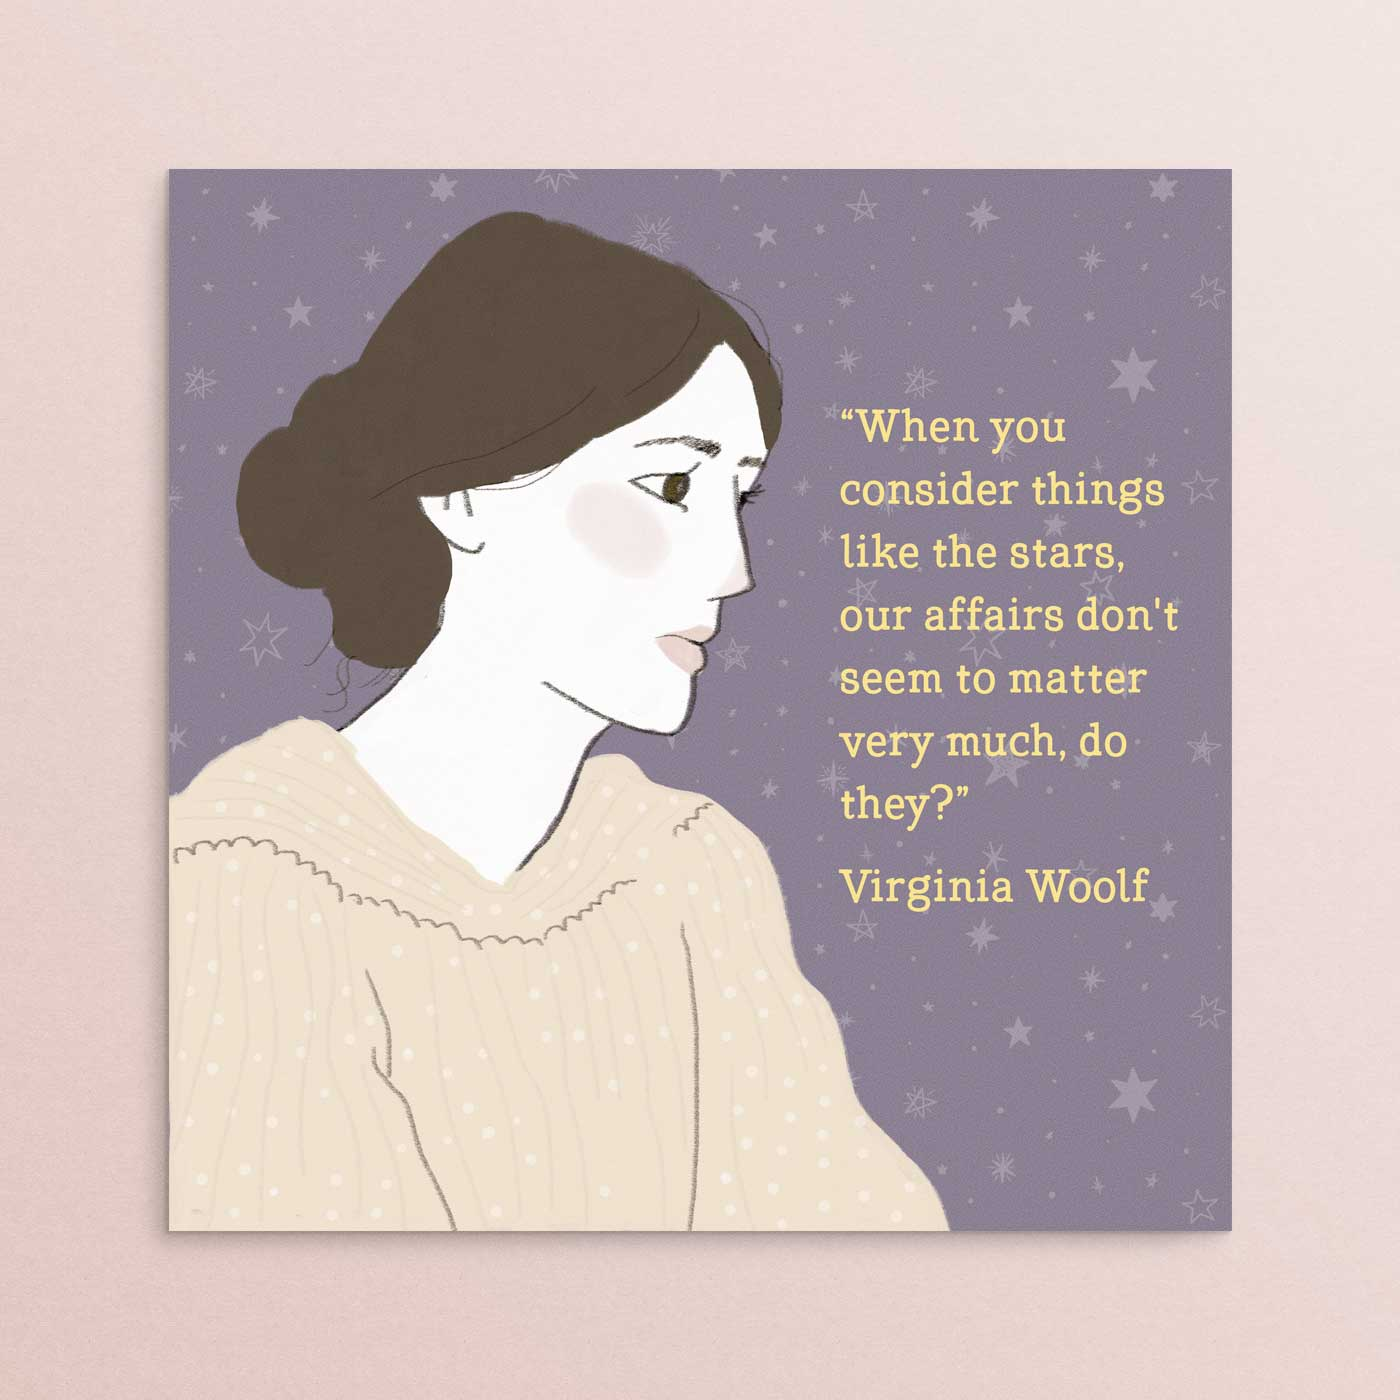 virginia-woolf-quote-web-monicagalanart